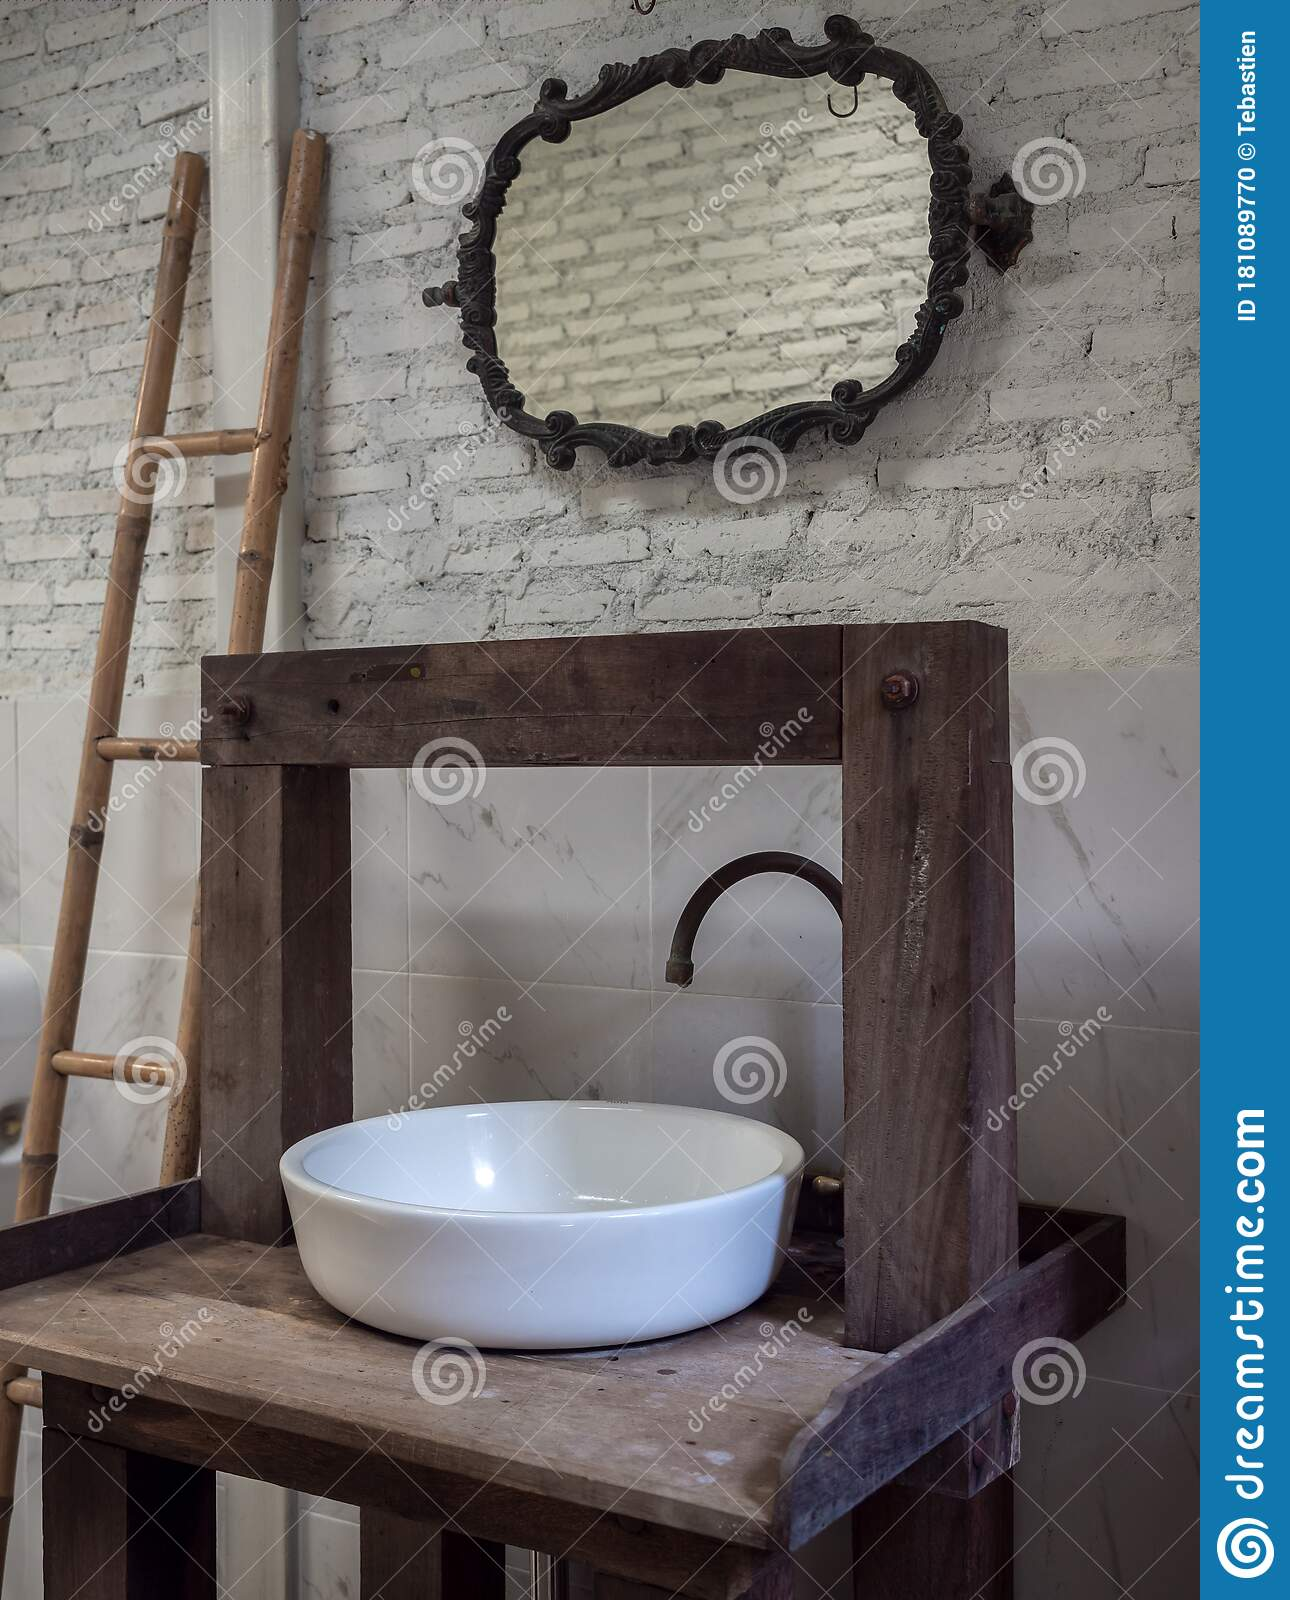 White Clean Sink Bath And Faucet On Vintage Wooden Table And Vintage Mirror On White Brick Wall Background Stock Photo Image Of Bright Concept 181089770